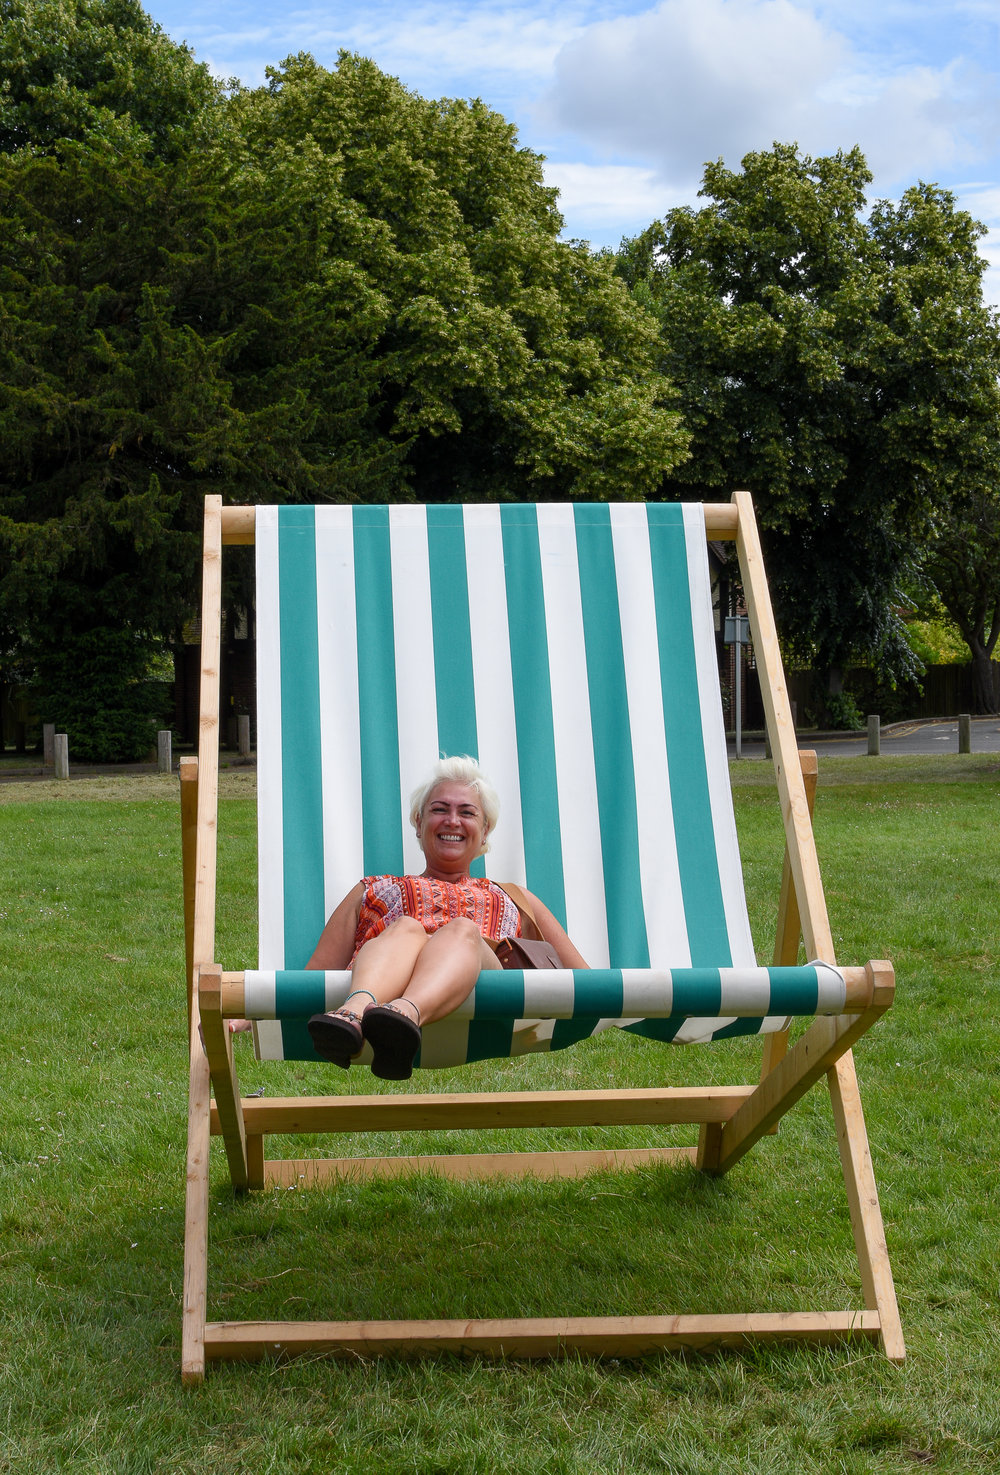 Giant deck chair fun! -